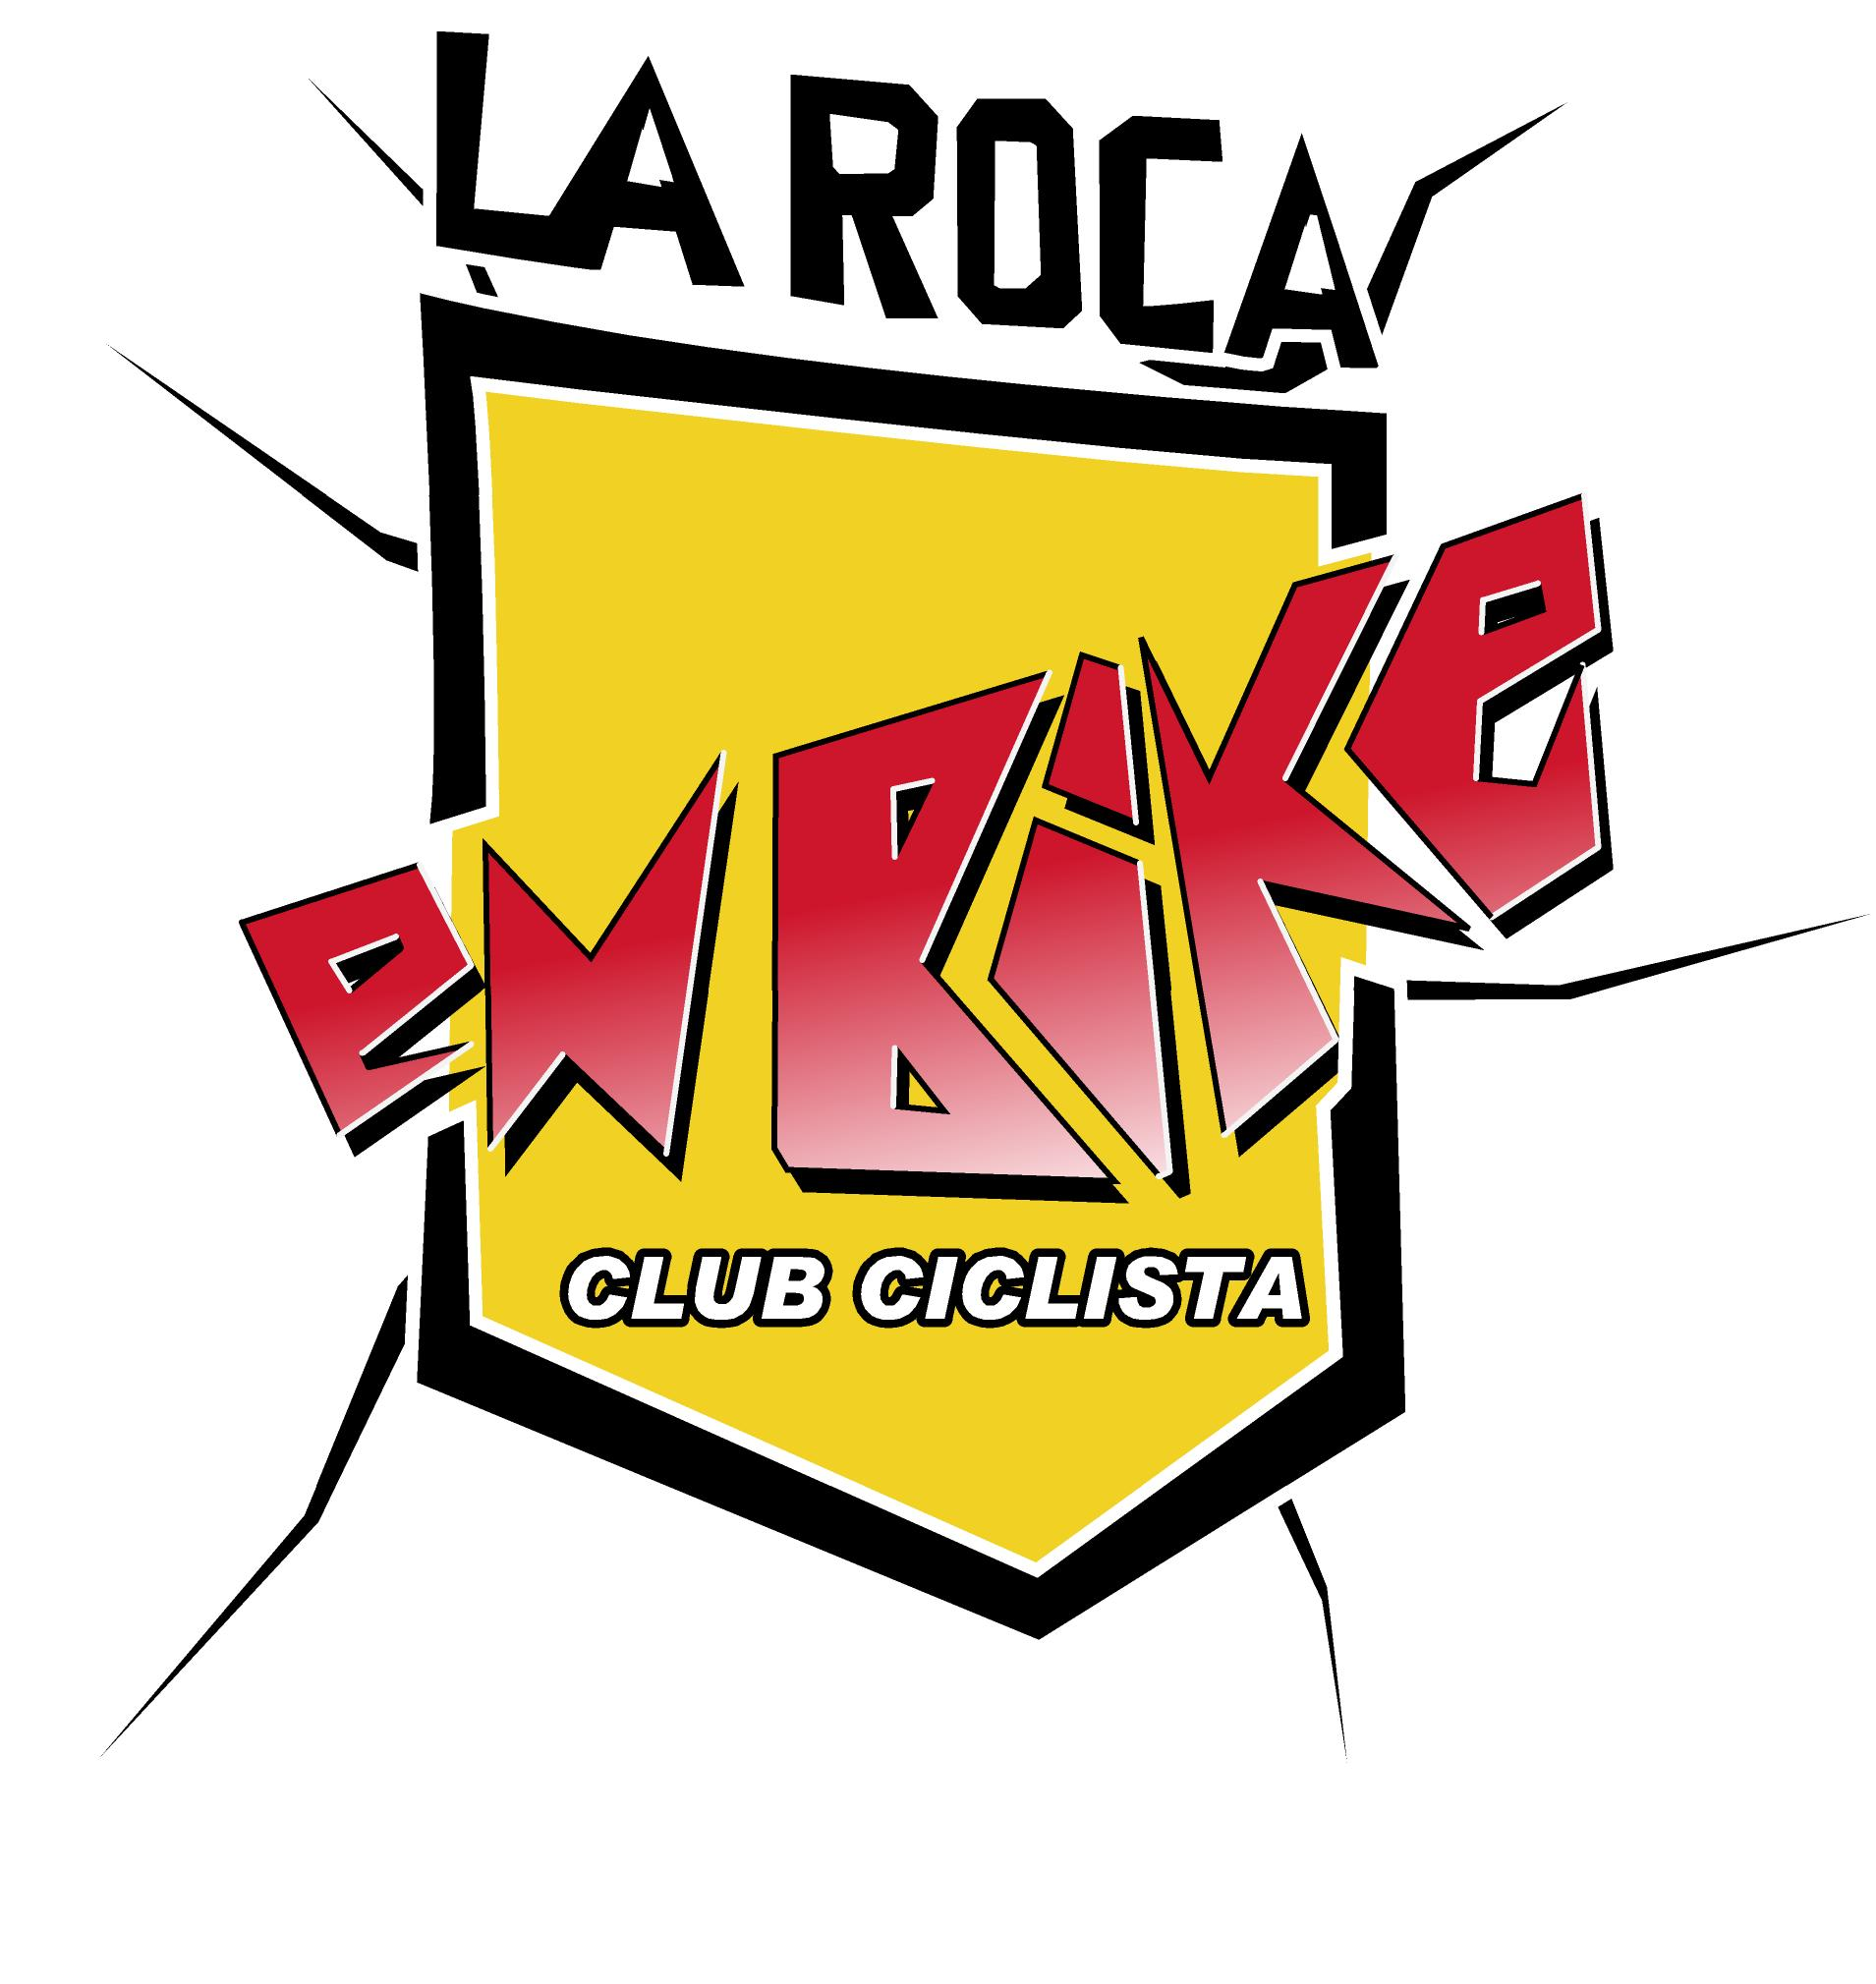 Club Ciclista la Roca en Bike